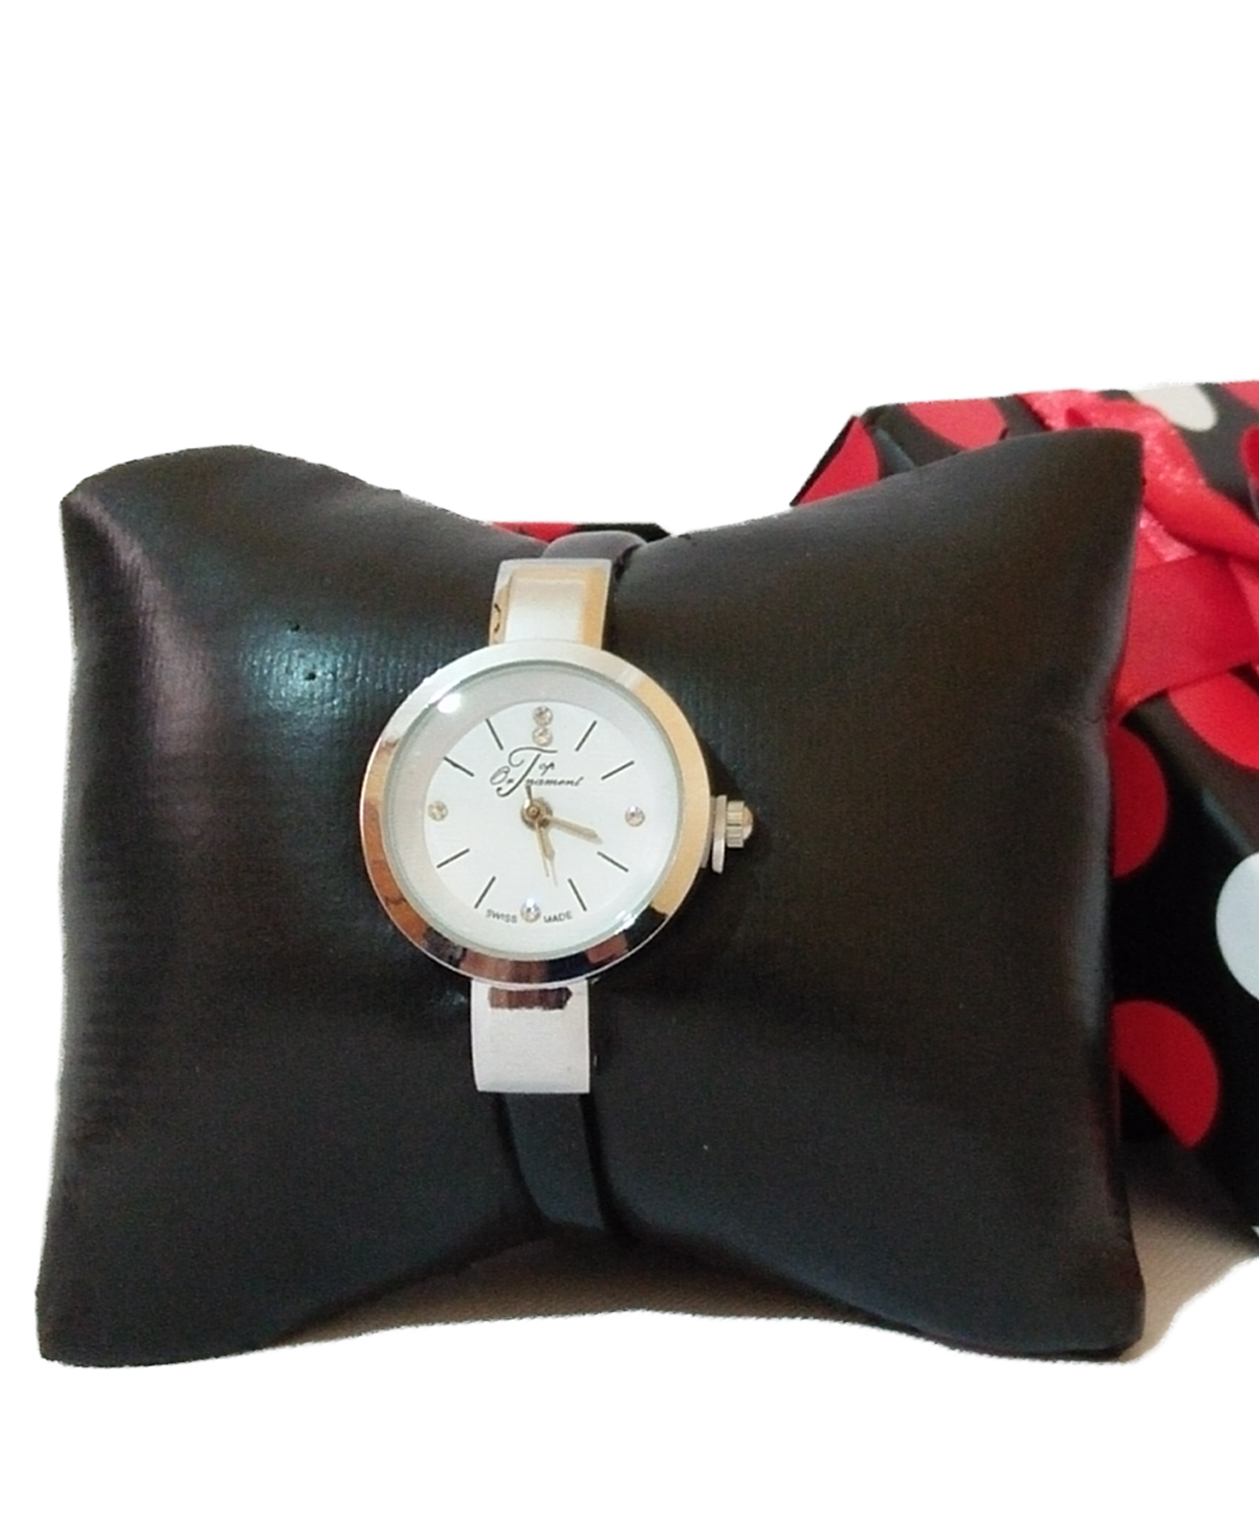 Montre Top Ornament Black Swiss pour femme